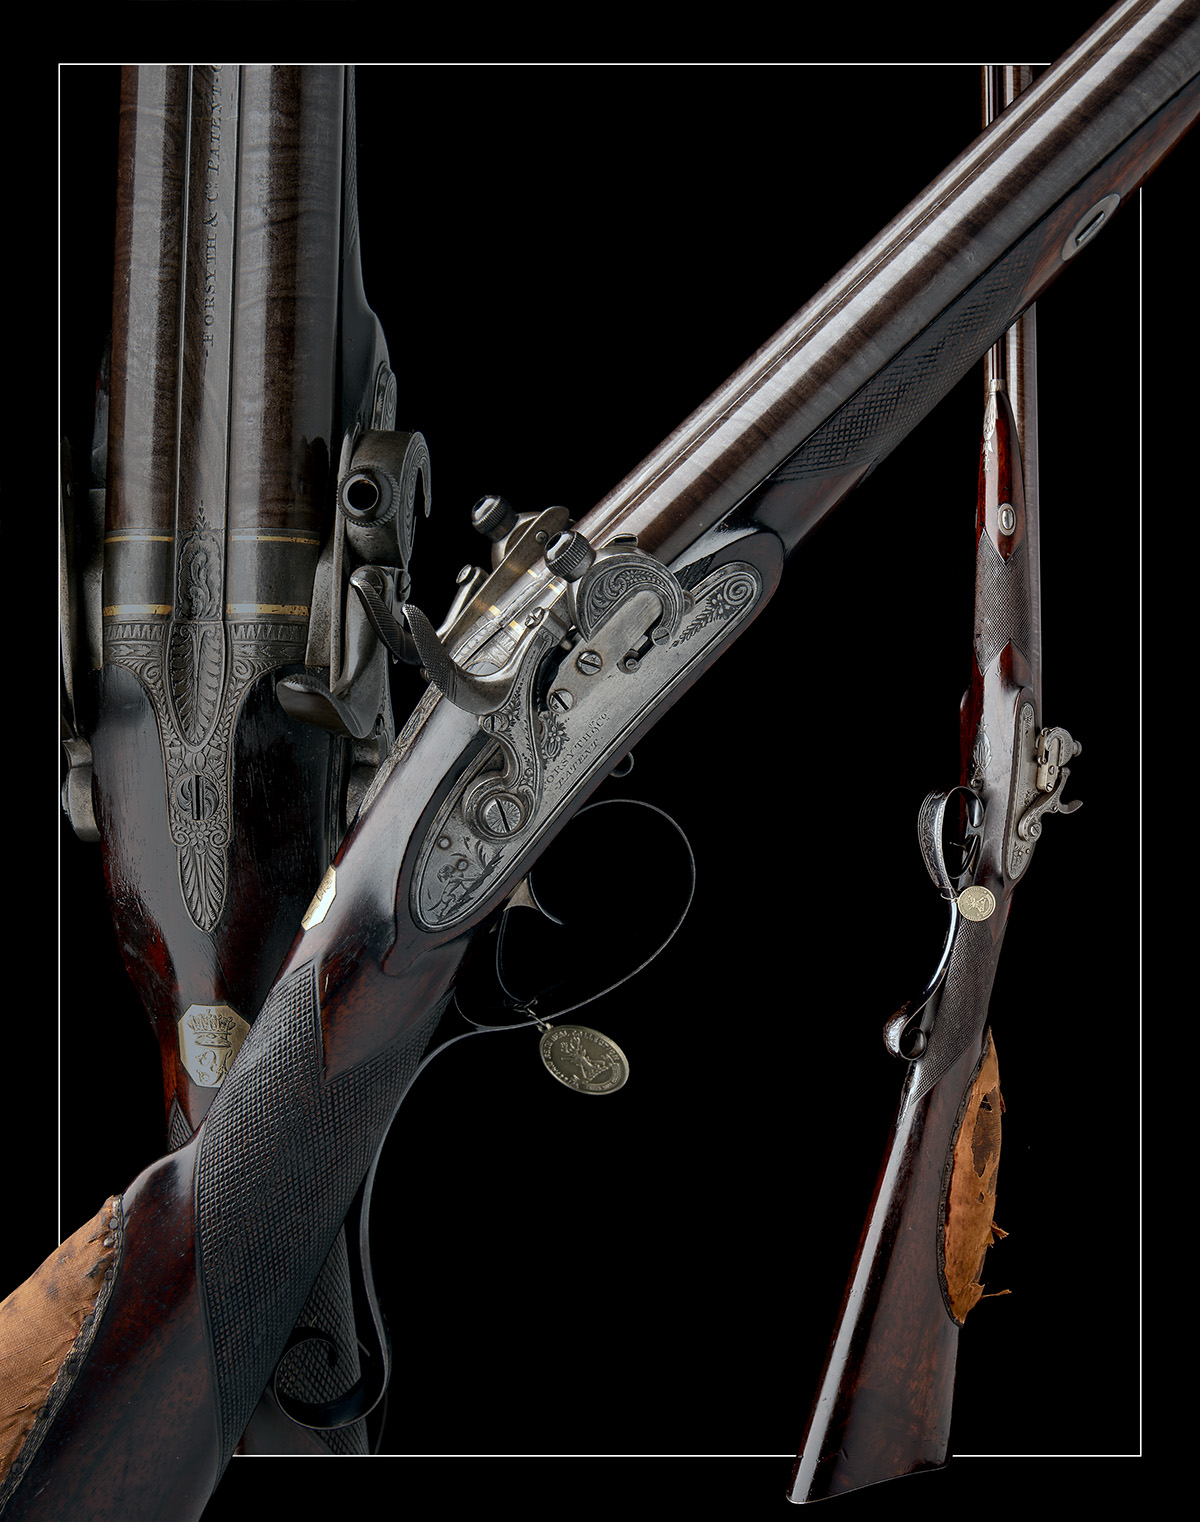 EX W. KEITH NEAL: FORSYTH & CO., LONDON AN EXCEEDINGLY RARE 19-BORE SELF-PRIMING SPORTING GUN, - Image 21 of 21